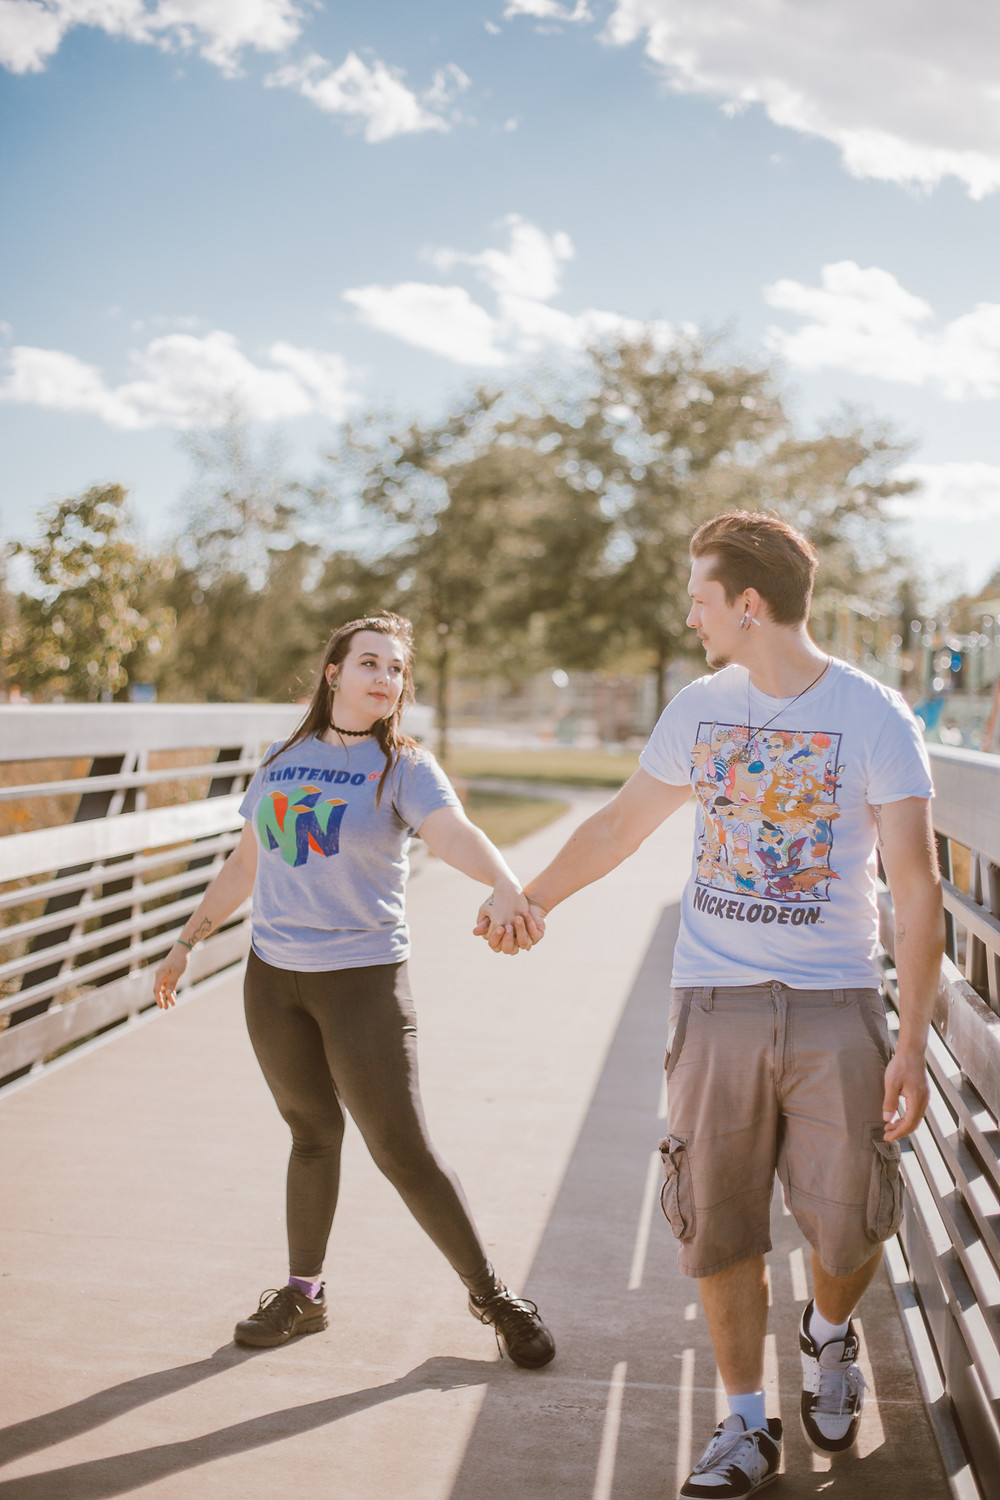 Lifestyle couples photography at Memorial Park in Appleton, WI.